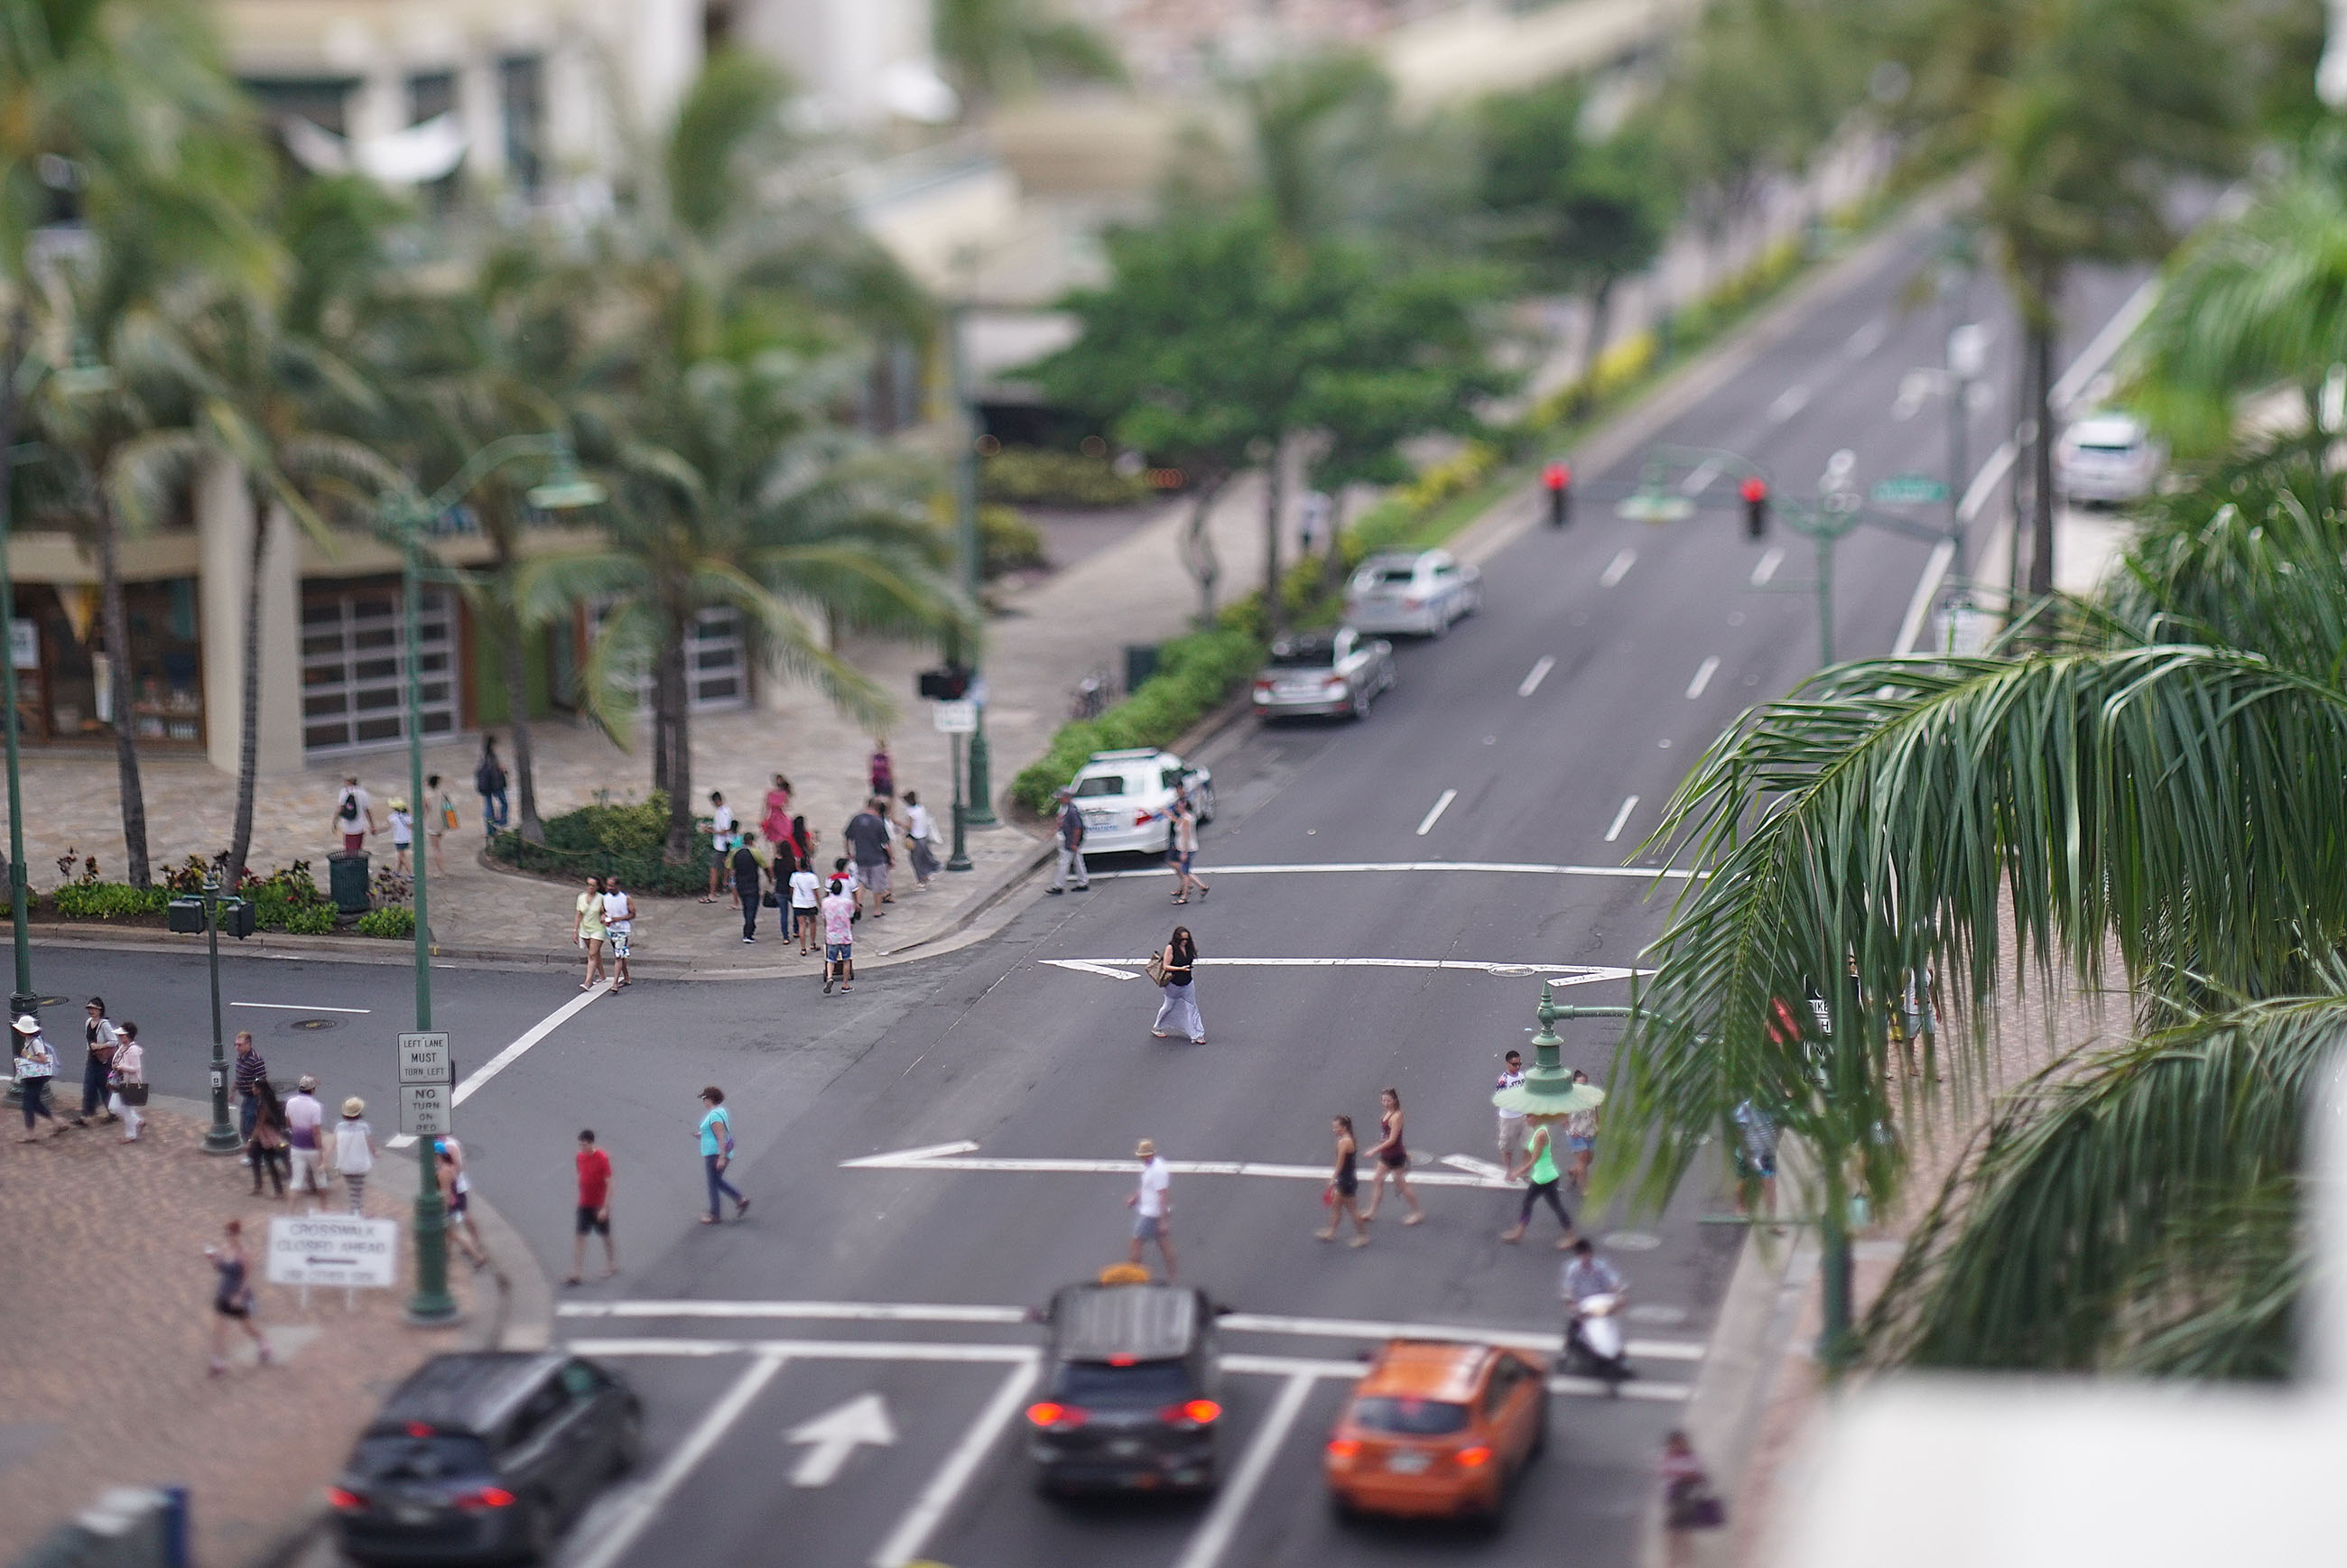 Waikiki Crosswalks Kalakaua Ave Kanekapolei. 31 july 2016